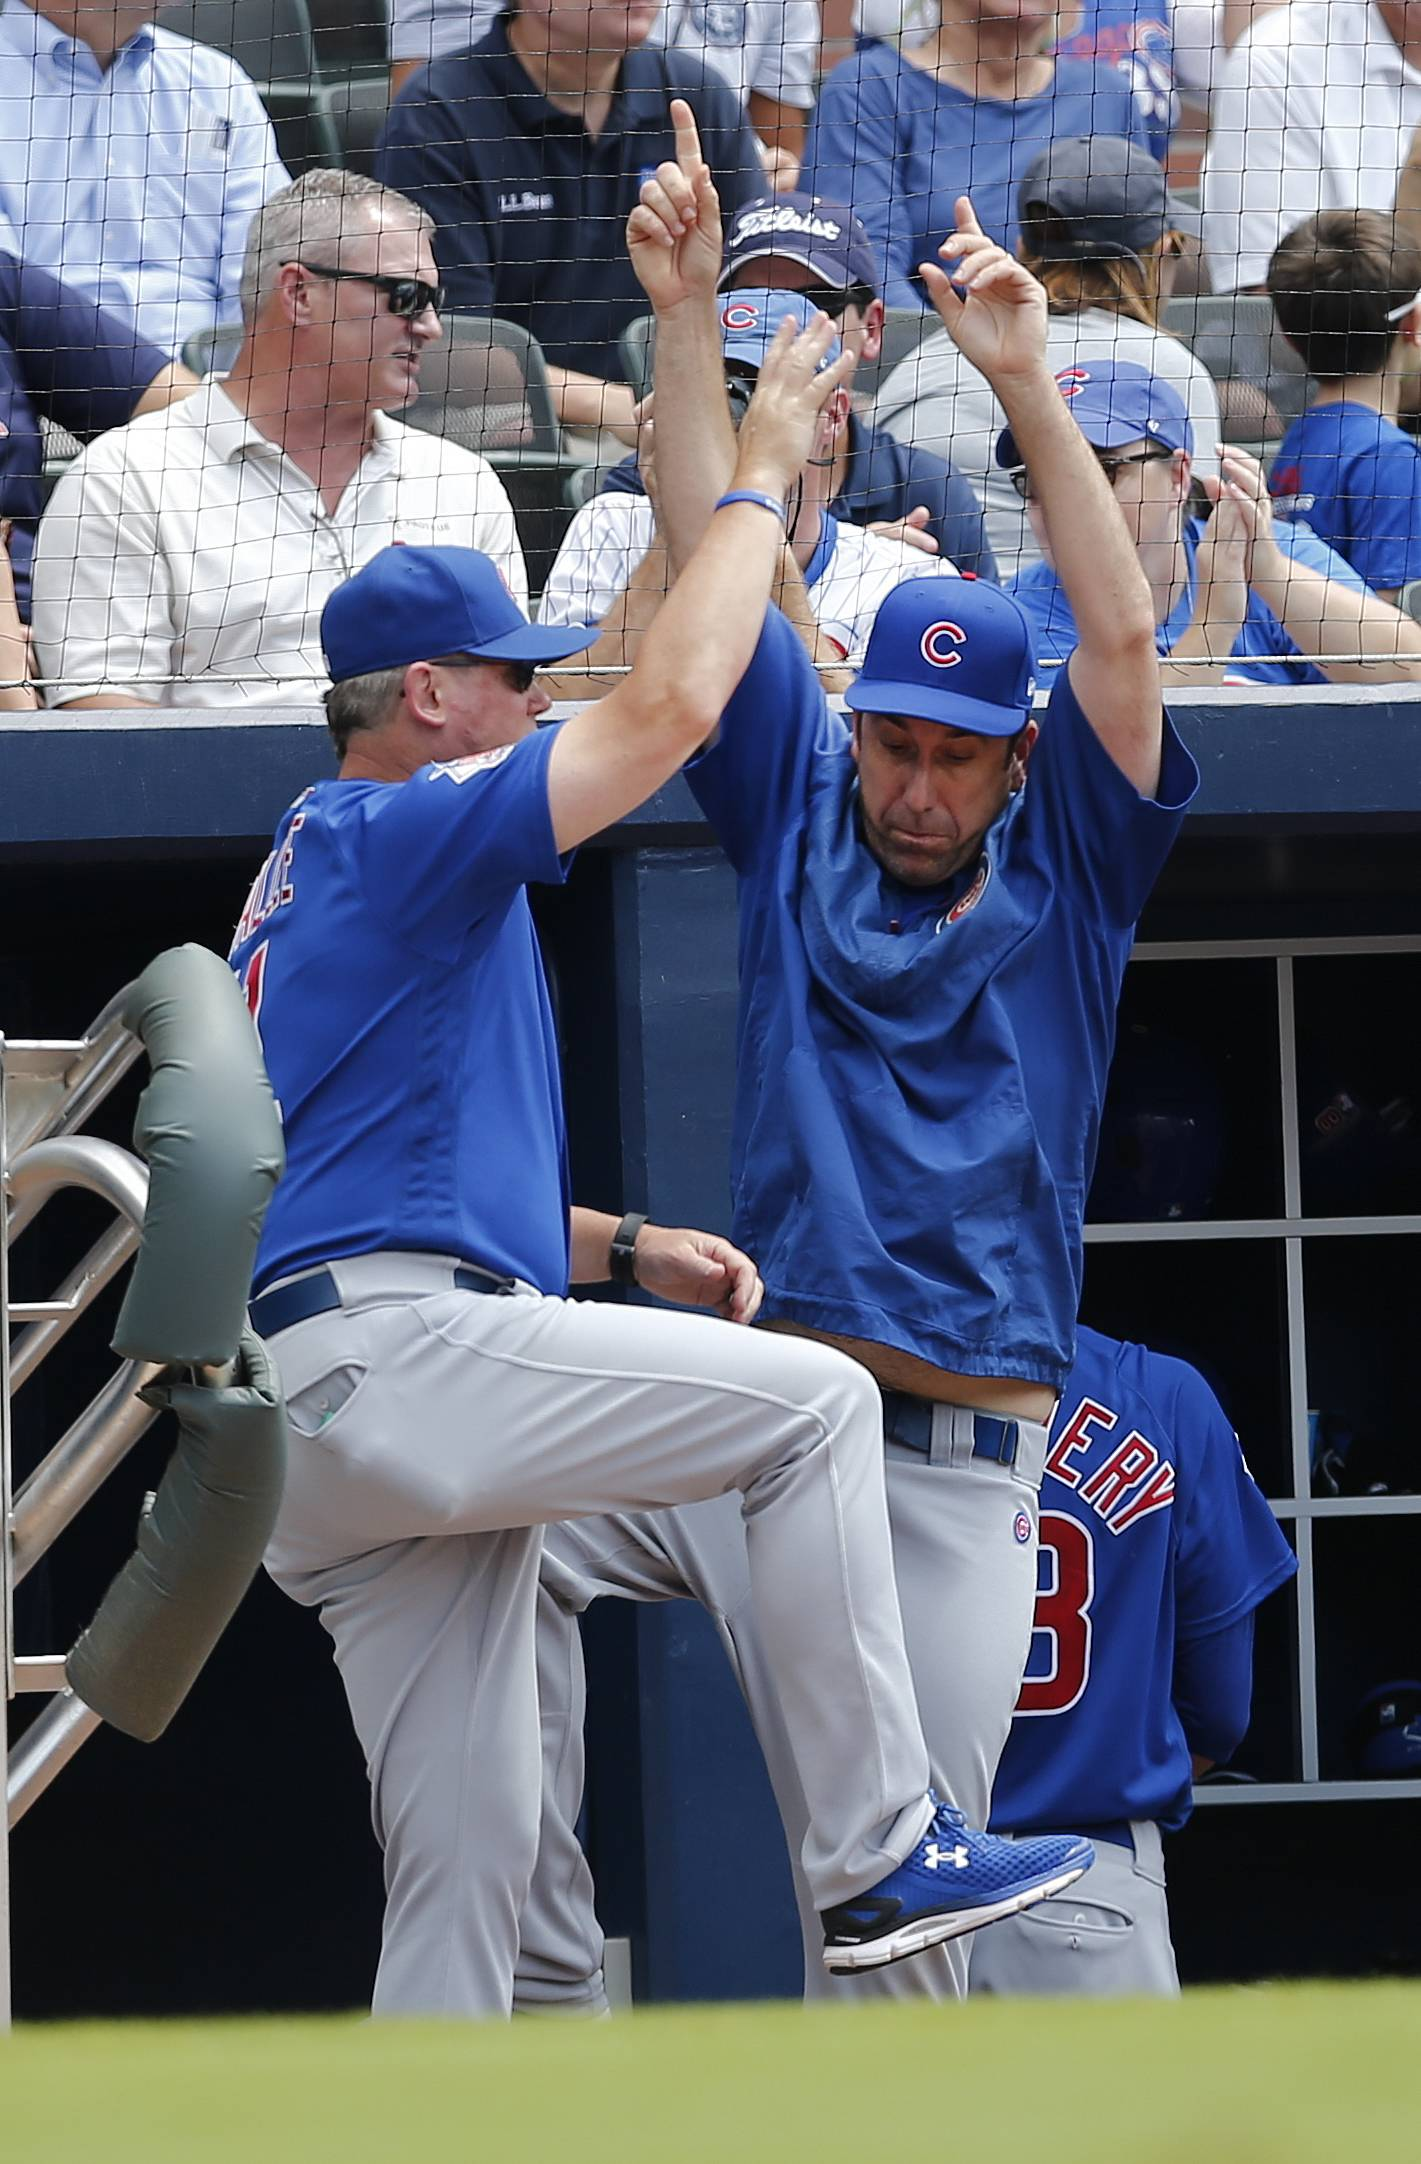 Chicago Cubs hitting coach John Mallee (11), left, and catching coach Mike Borzello (58) react after a Cubs' run in the second inning of a baseball game against the Atlanta Braves Wednesday, July 19, 2017, in Atlanta. (AP Photo/John Bazemore)